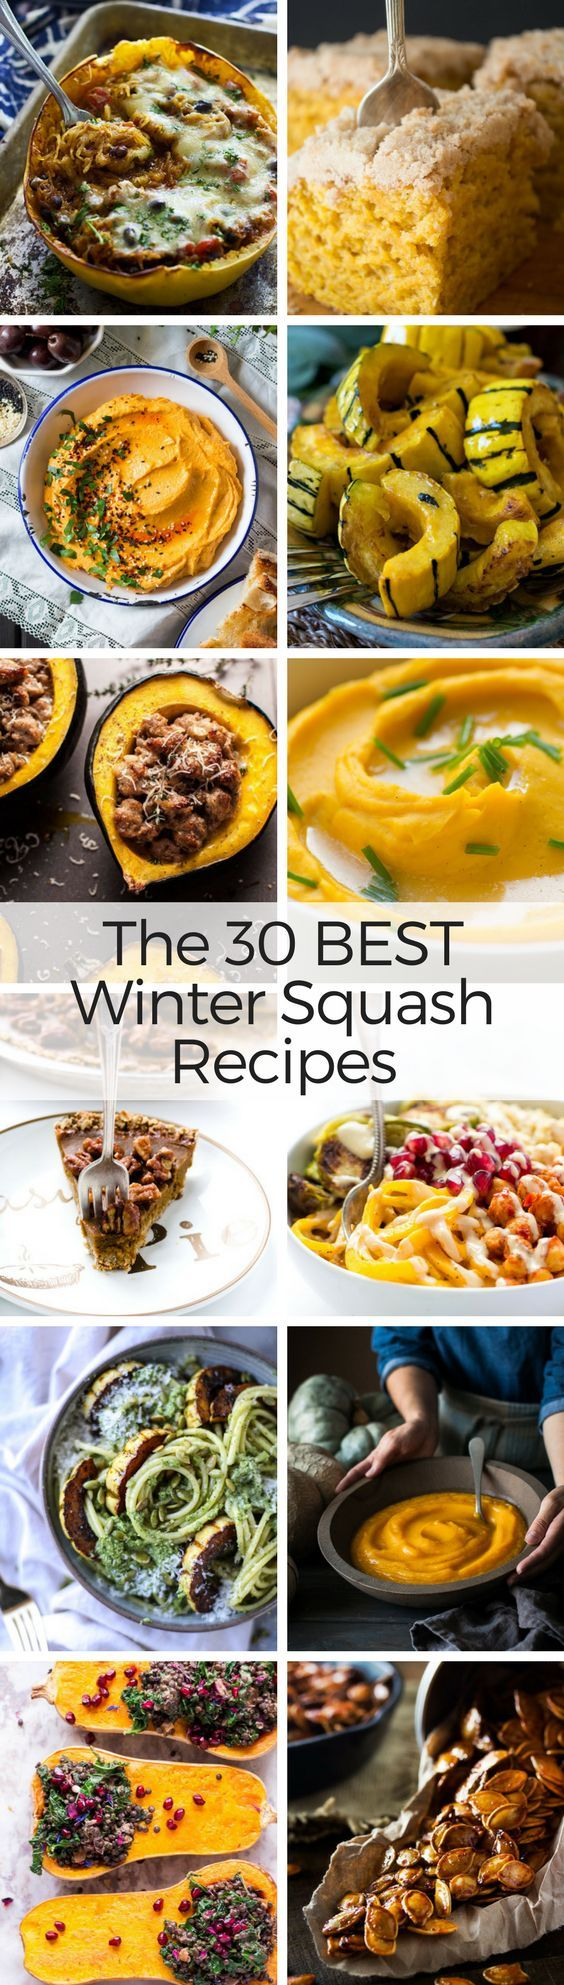 What to Eat Now: Winter Squash ~ there's a wonderland of winter squash out there, and it turns out the good eating goes goes way beyond pumpkin pie. So let's get all those gorgeous gourds out of the tacky fall displays and into our kitchens, where they belong ~ here are the 30 best winter squash recipes for butternut, acorn, kabocha, hubbard, pumpkin and more! #fall #squash #wintersquash #butternut #acorn #pumpkin #hubbard #delicata #spaghettisquash